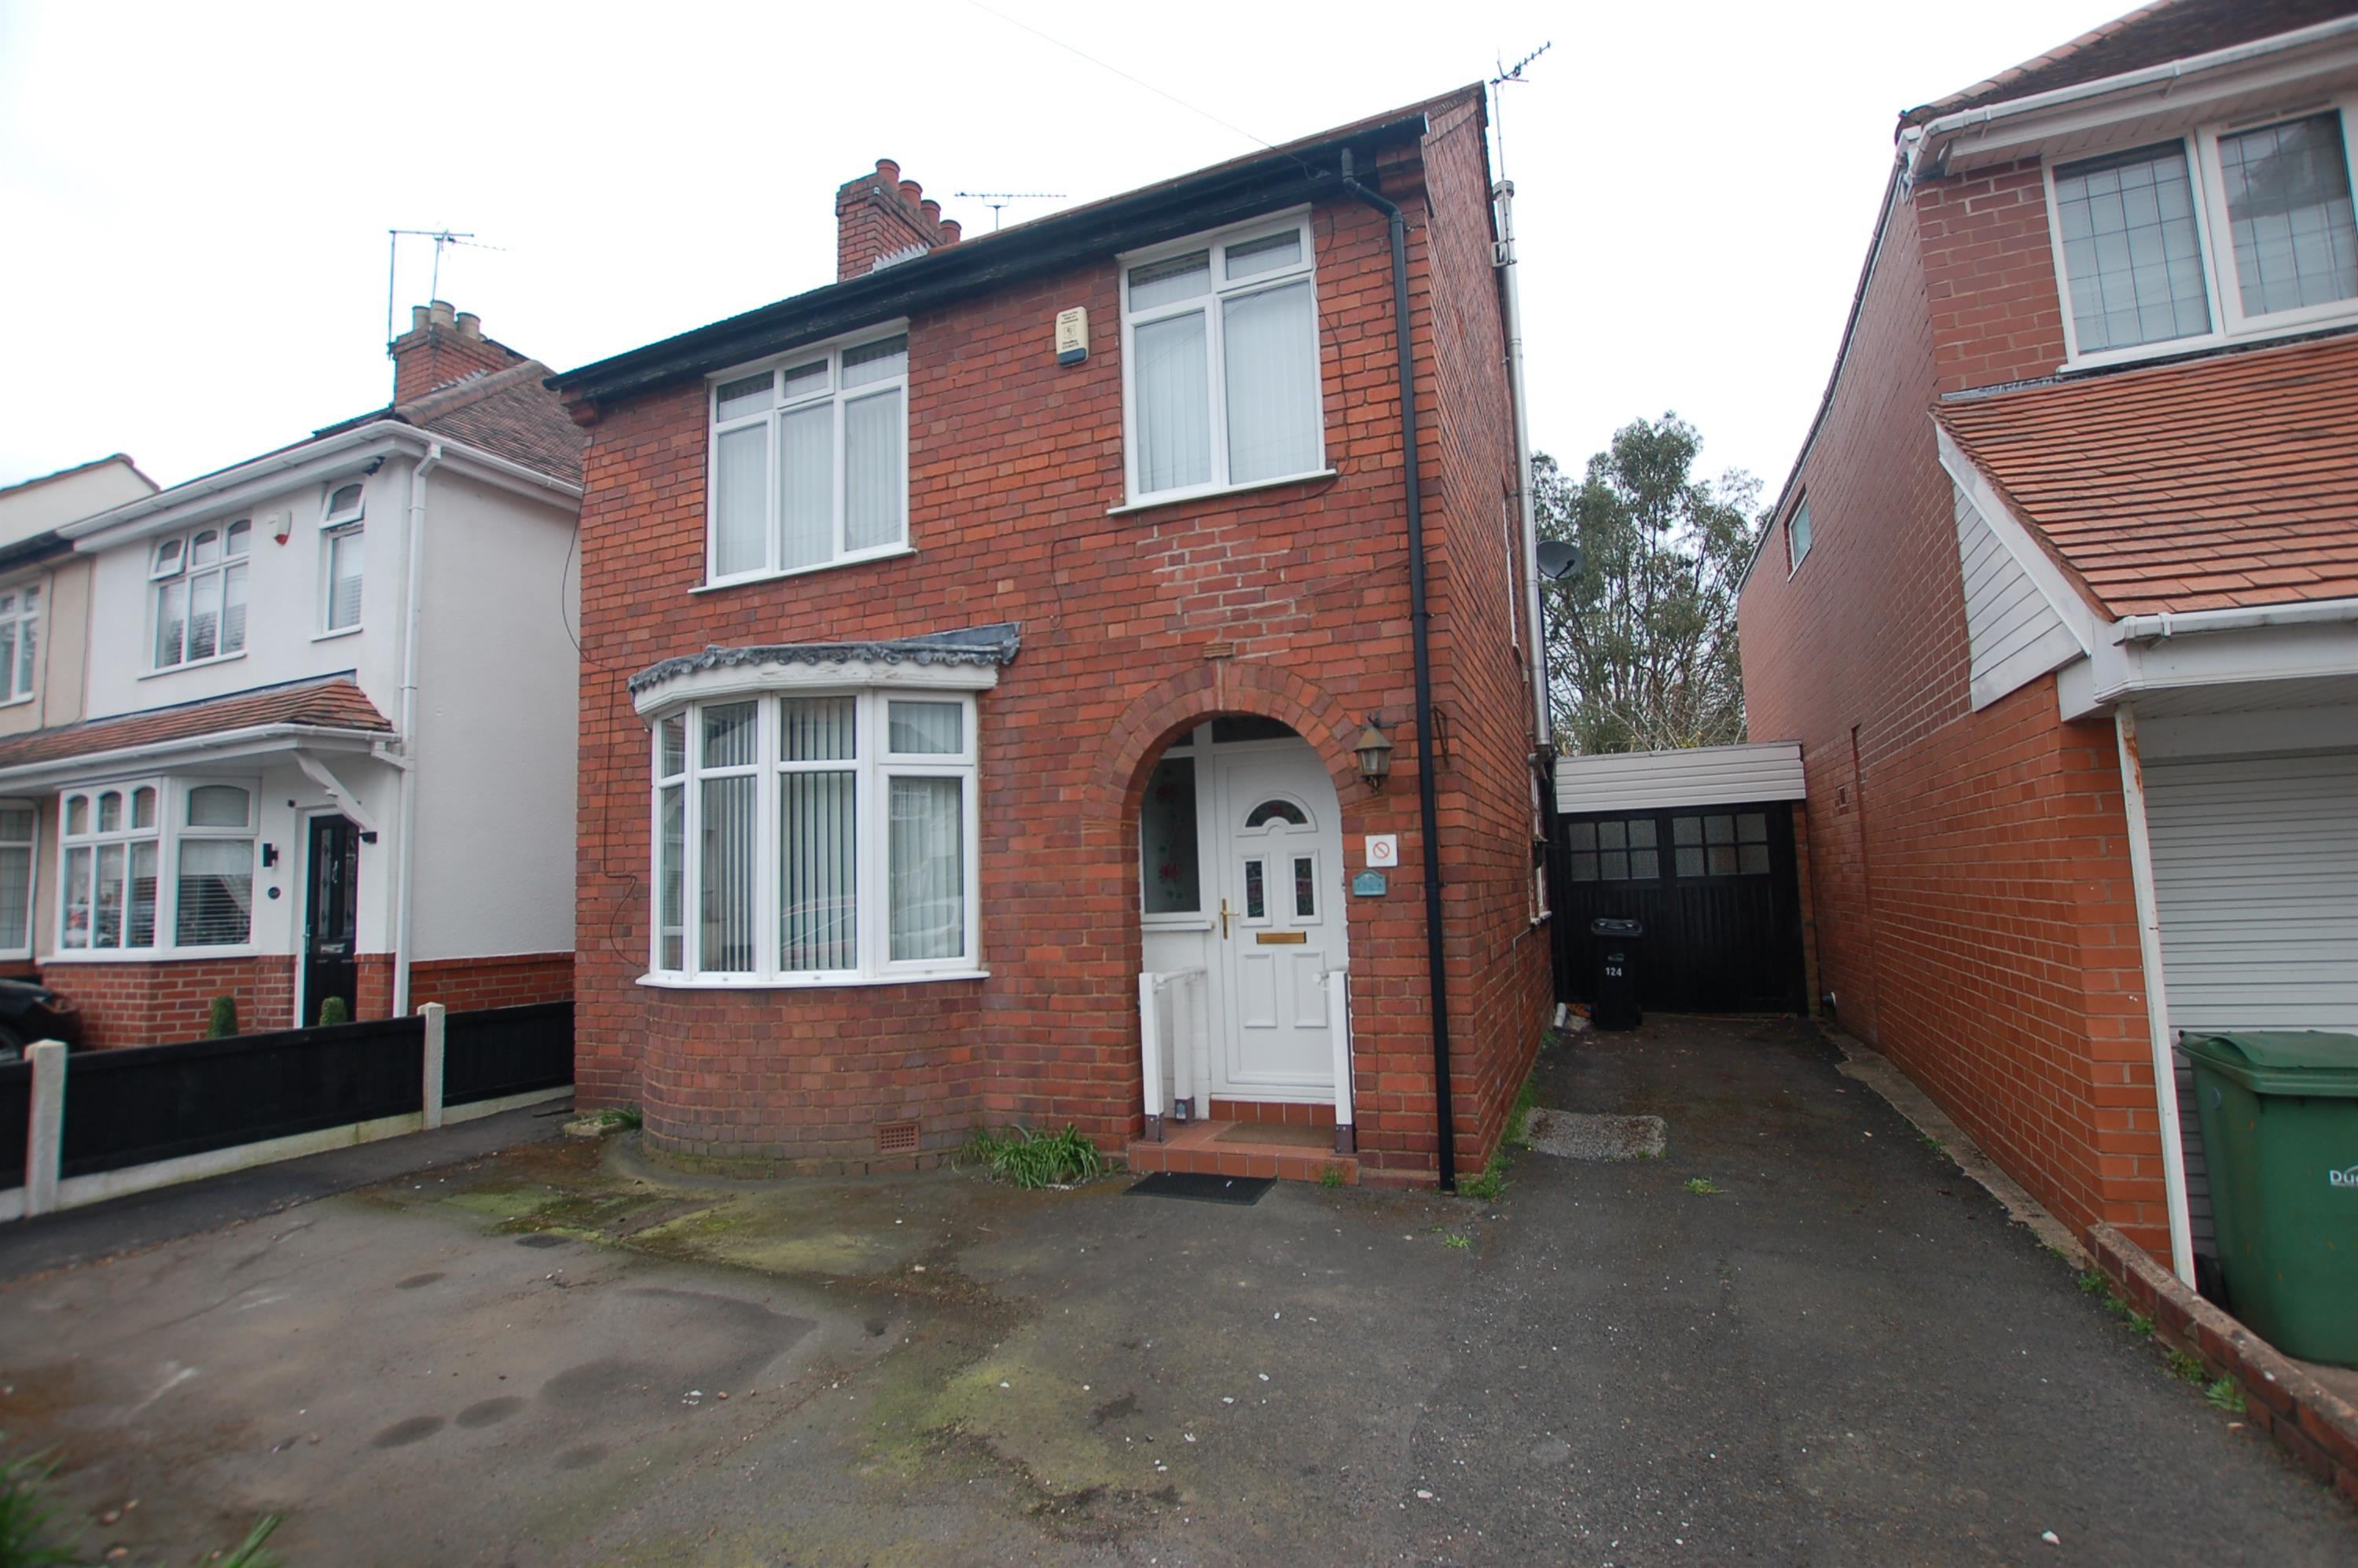 Mount Pleasant, Kingswinford, DY6 9SH